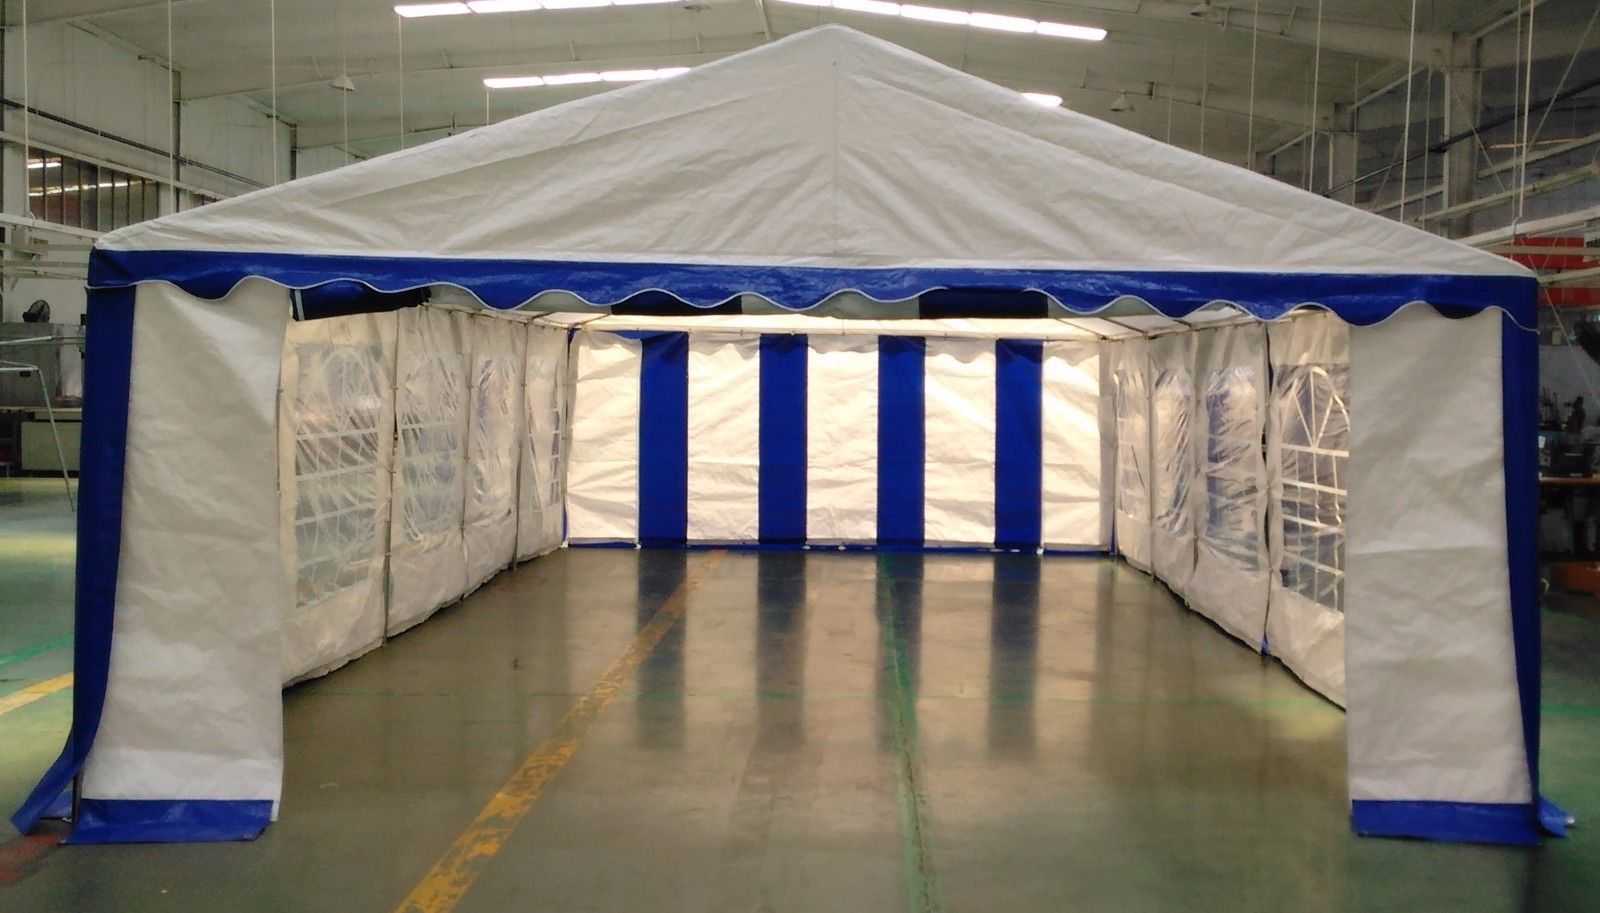 15 x 30 heavy duty white and blue party tent canopy. Black Bedroom Furniture Sets. Home Design Ideas